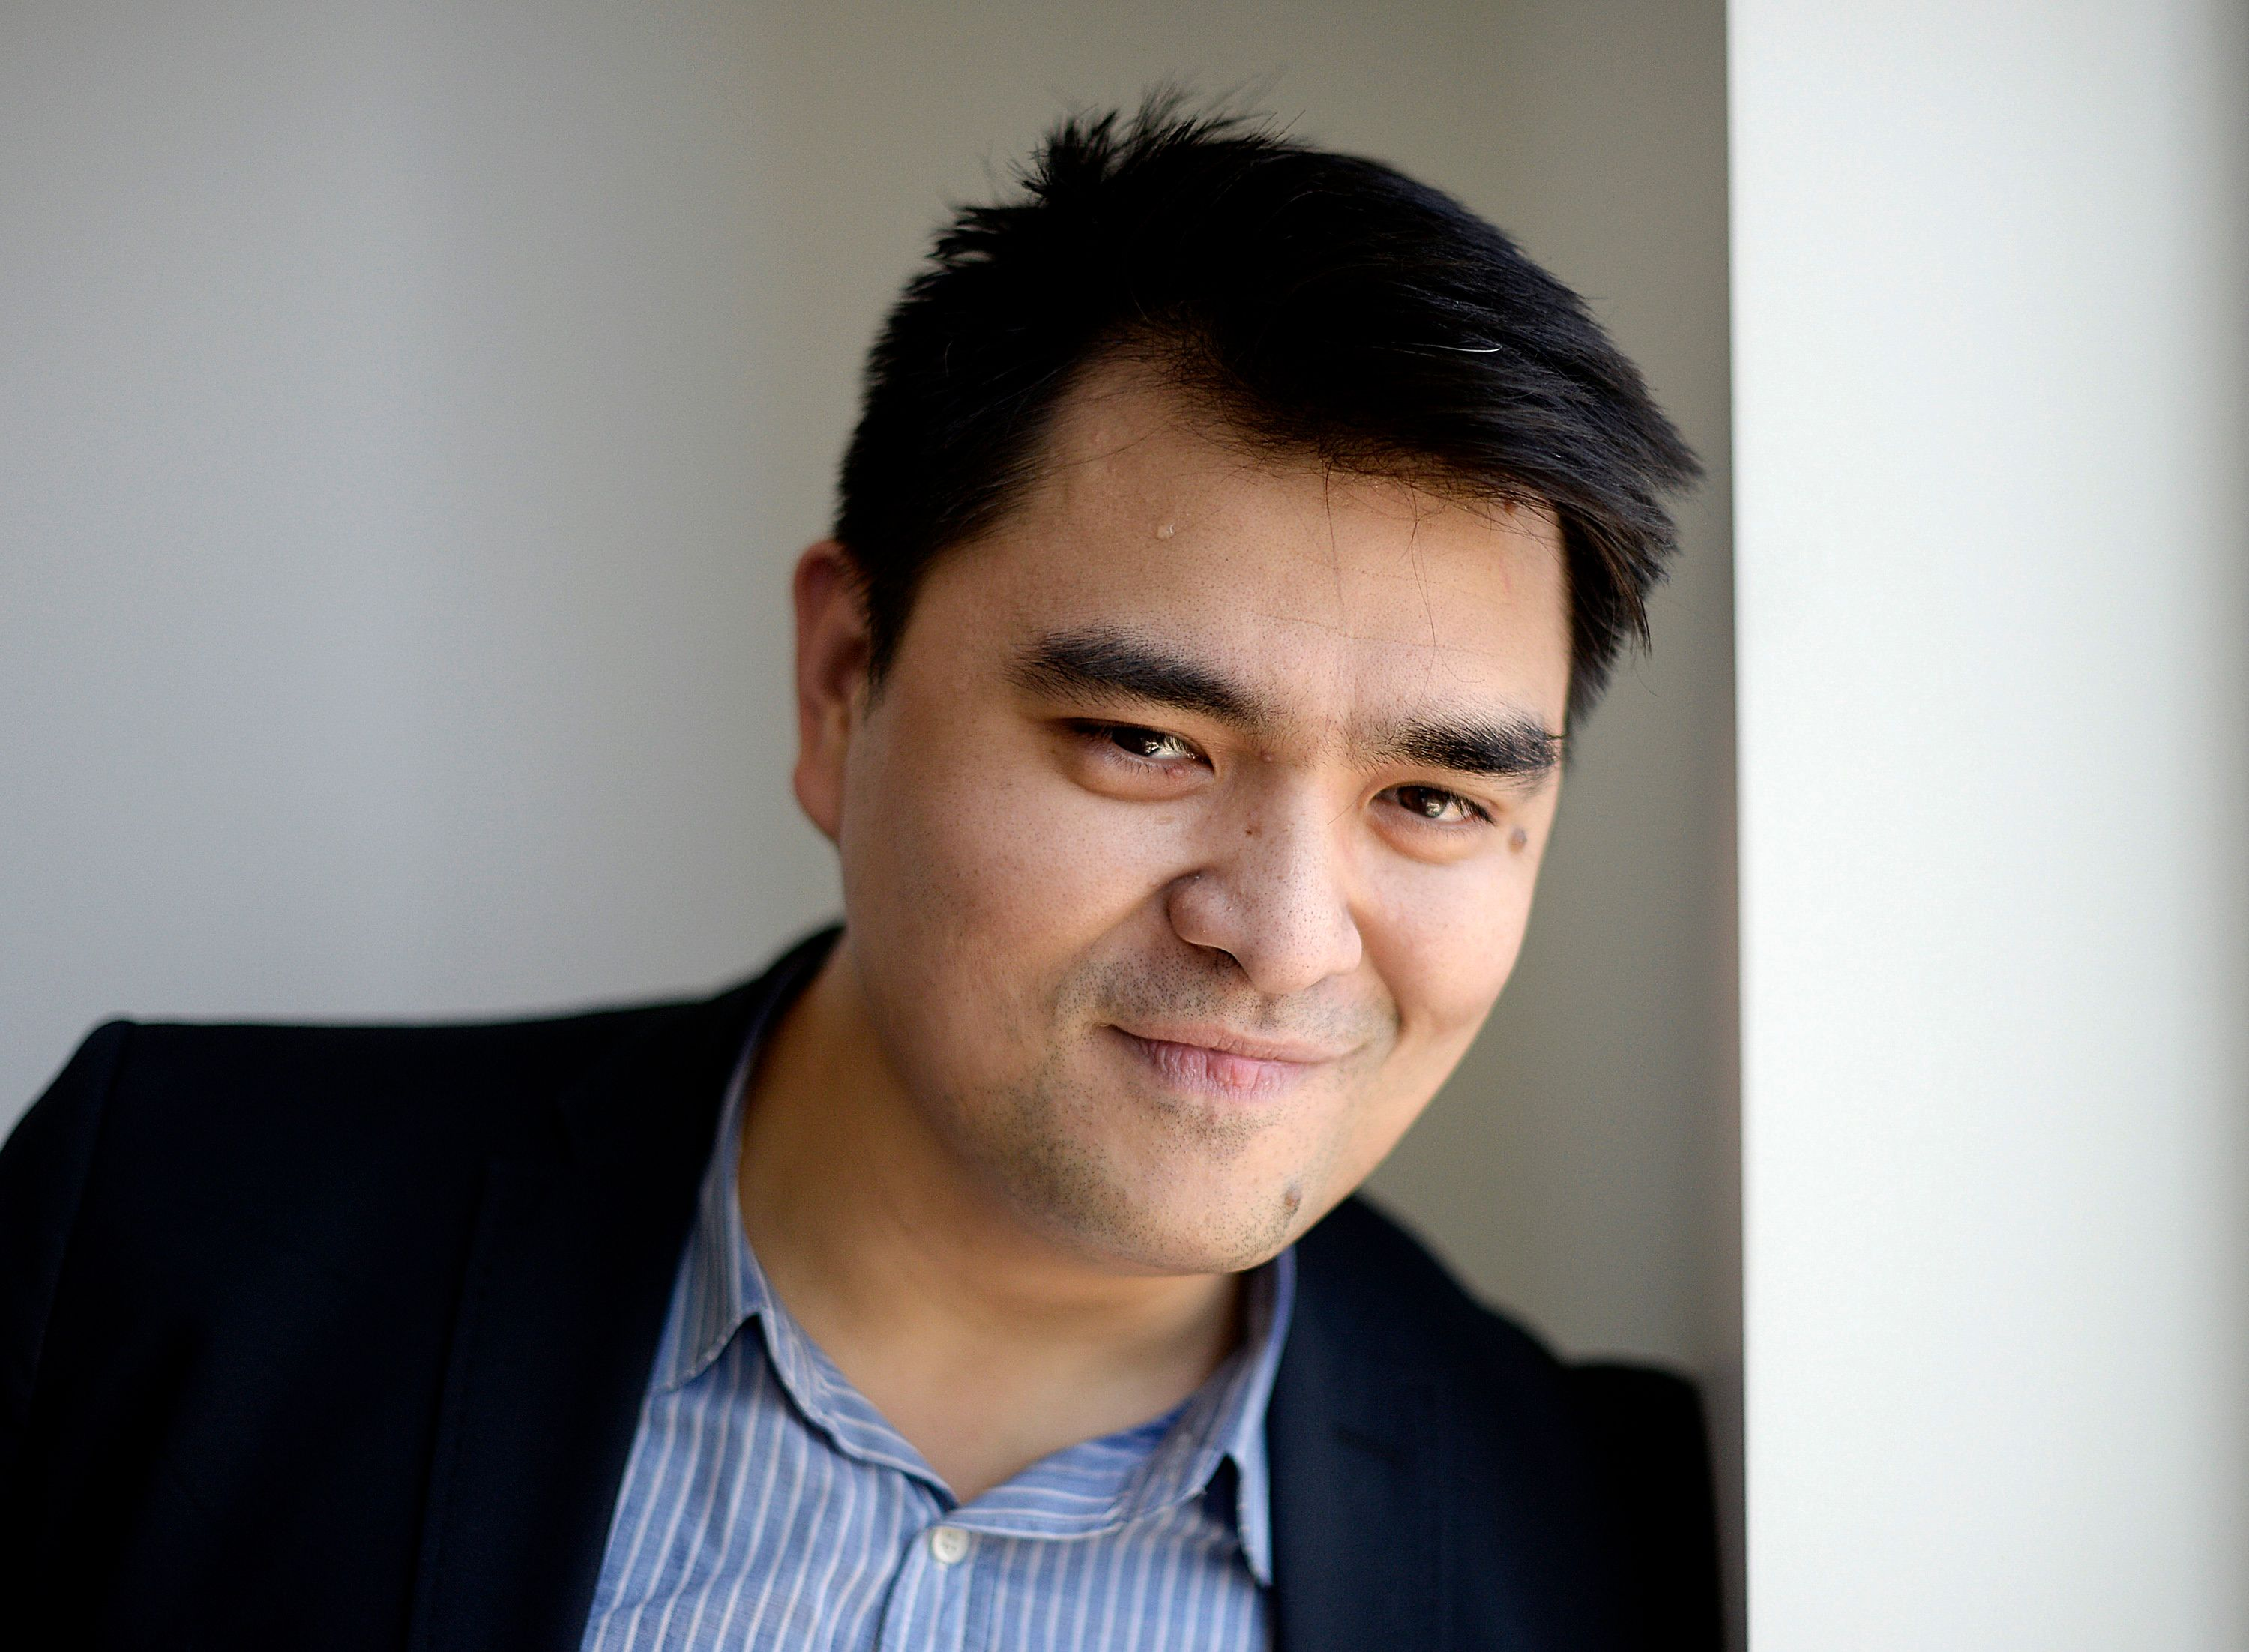 """Journalist and director of film """"Documented"""", Jose Antonio Vargas, poses for a photograph in Los Angeles, Californa June 18, 2014. In 1993 at the age of 12, Vargas said goodbye to his mother and boarded a plane in the Philippines to join his grandparents in California. It would be four more years before he would learn that he was in the United States illegally. """"Documented,"""" the debut film of the Pulitzer Prize-winning journalist Vargas, who is still without the necessary papers, premieres on U.S. cable network CNN on June 29, 2014. It tells his story growing up and working as a newspaper reporter without legal status and without a path to reverse it. Picture taken June 18, 2014. To match TELEVISION-IMMIGRATION/ REUTERS/Kevork Djansezian  (UNITED STATES - Tags: ENTERTAINMENT MEDIA PORTRAIT)"""